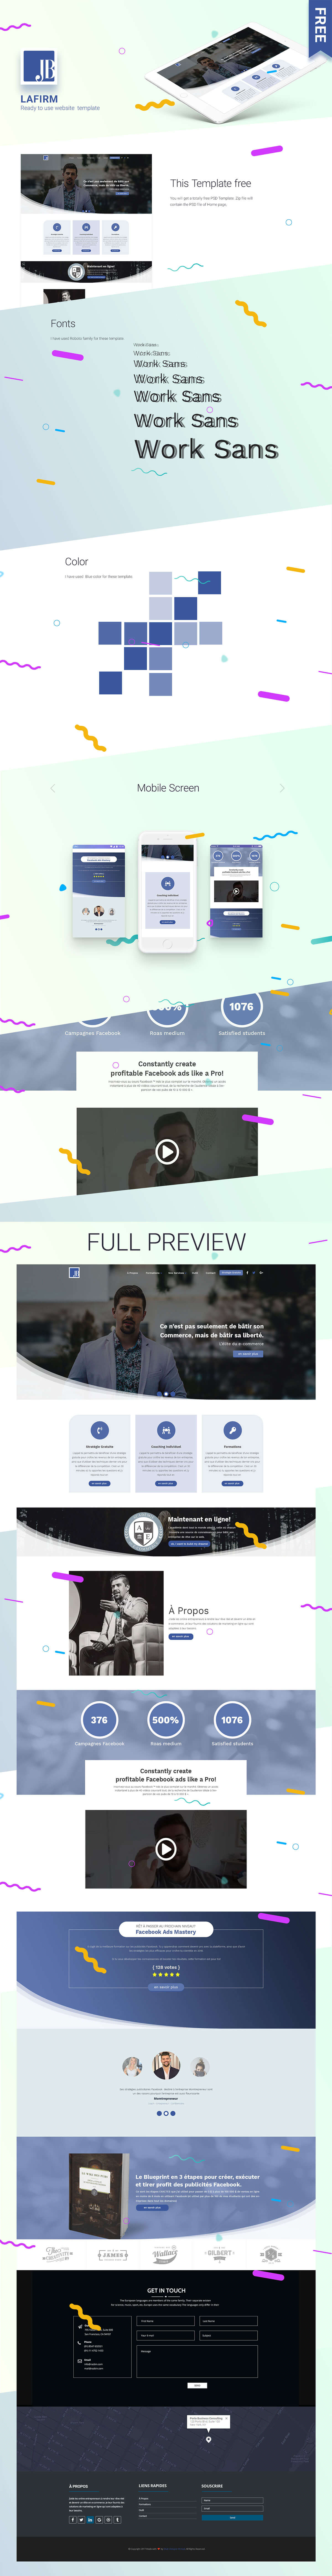 Free Lafirm Landing Page PSD Template